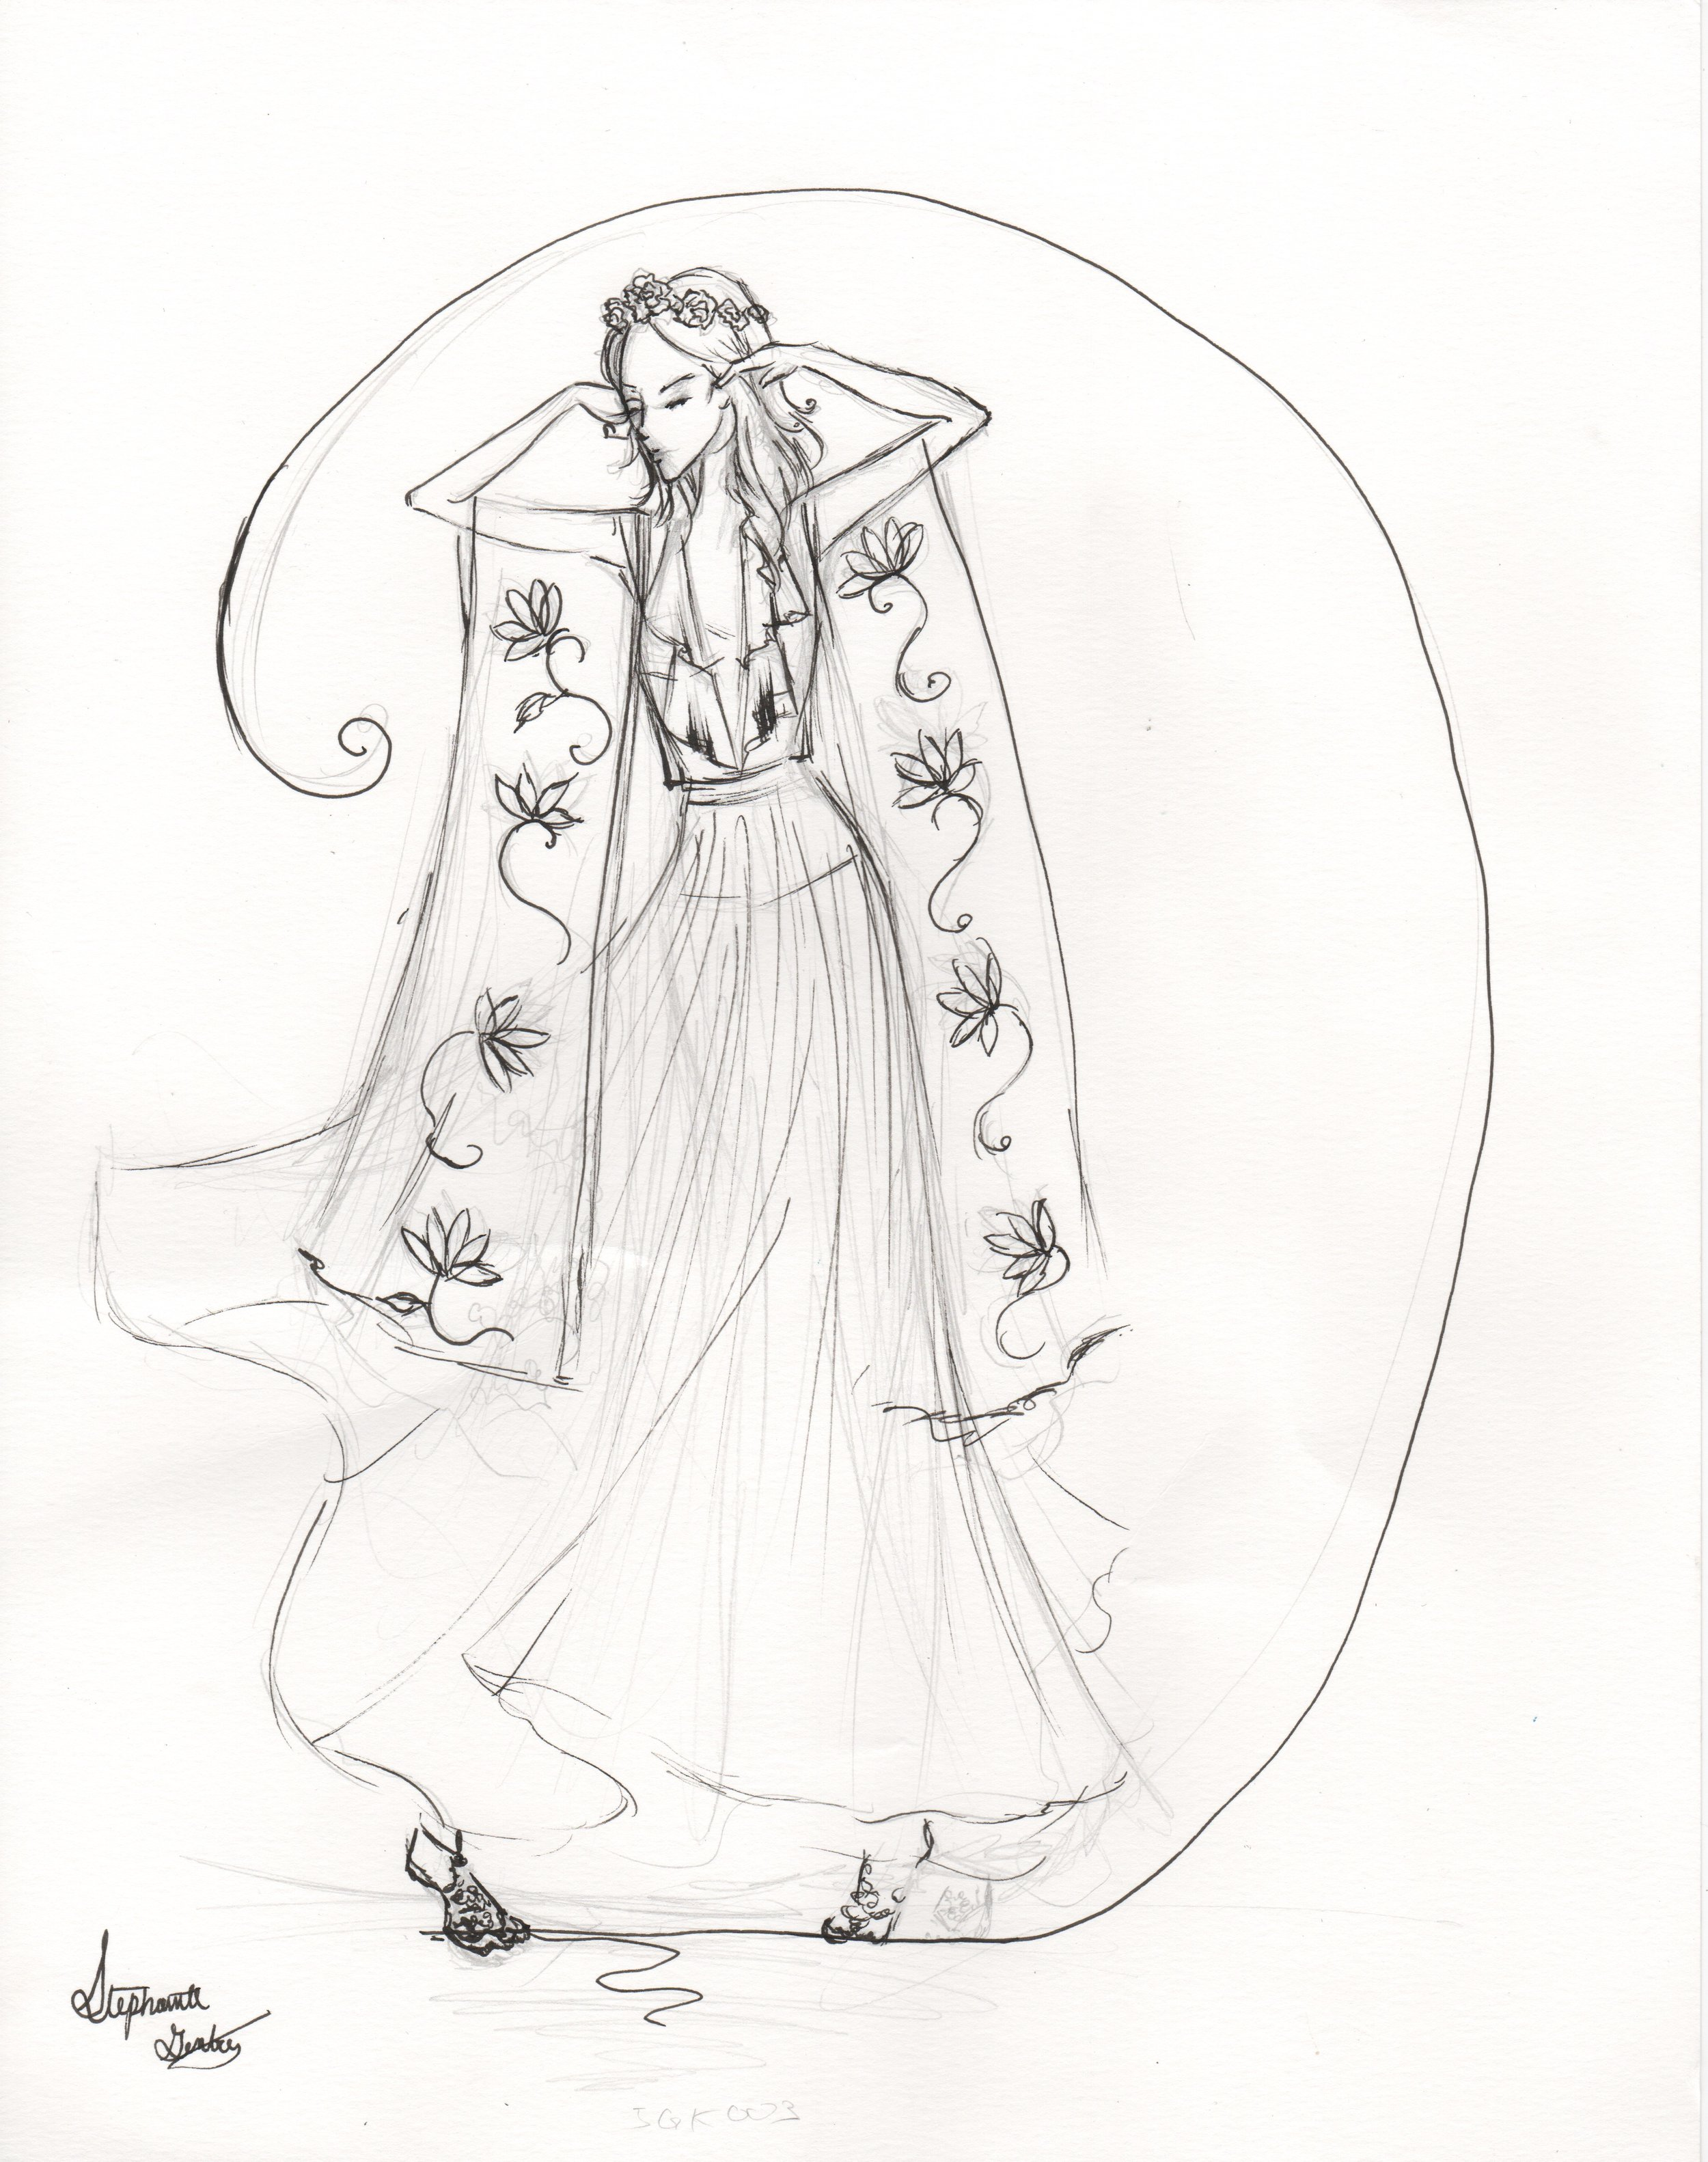 Boho Bride Inspiration and way to customize bridal portrait. Micron pen style